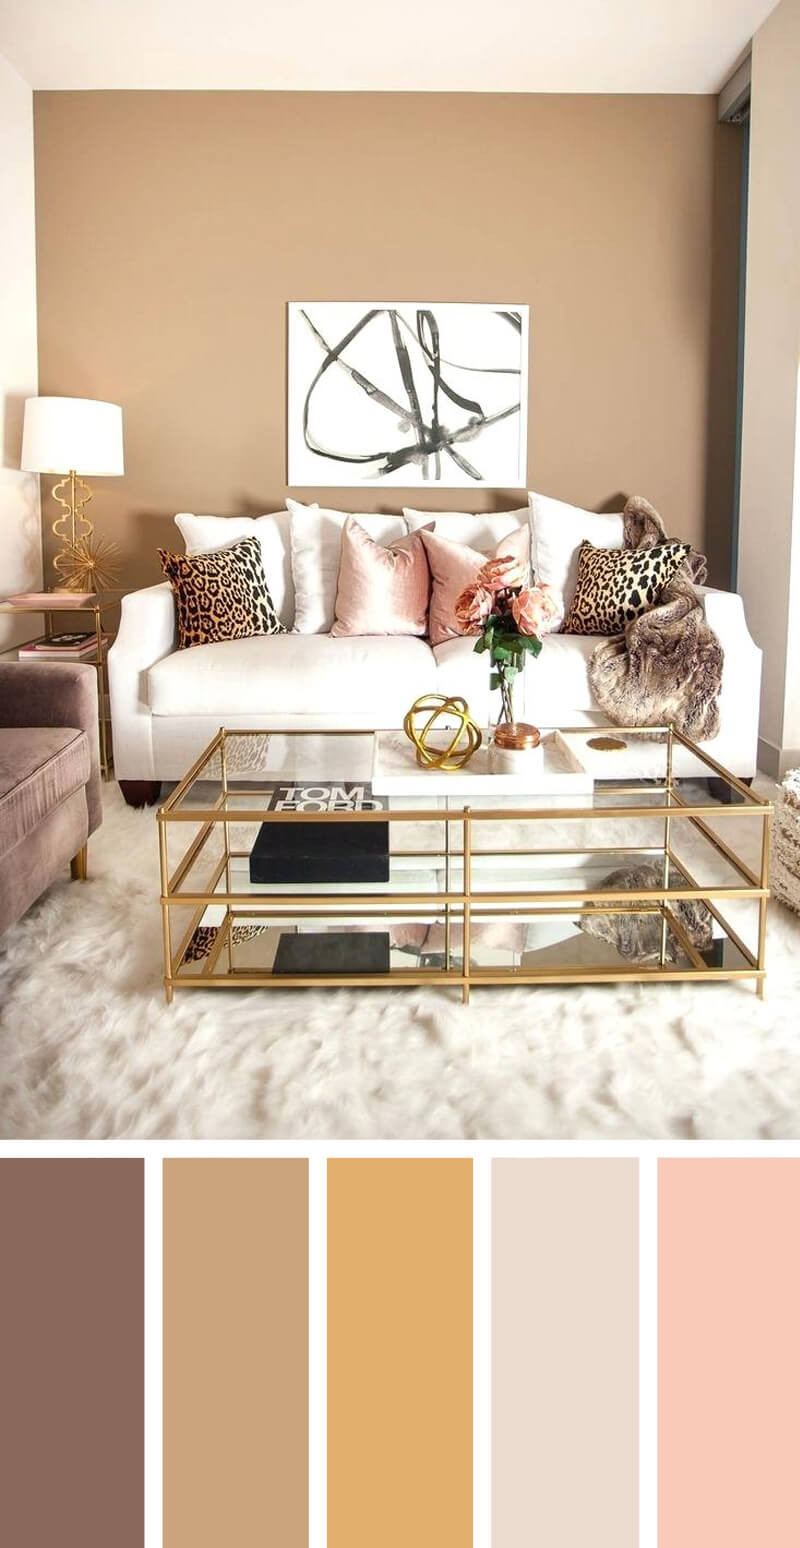 Living Room Painting Design: 11 Best Living Room Color Scheme Ideas And Designs For 2017